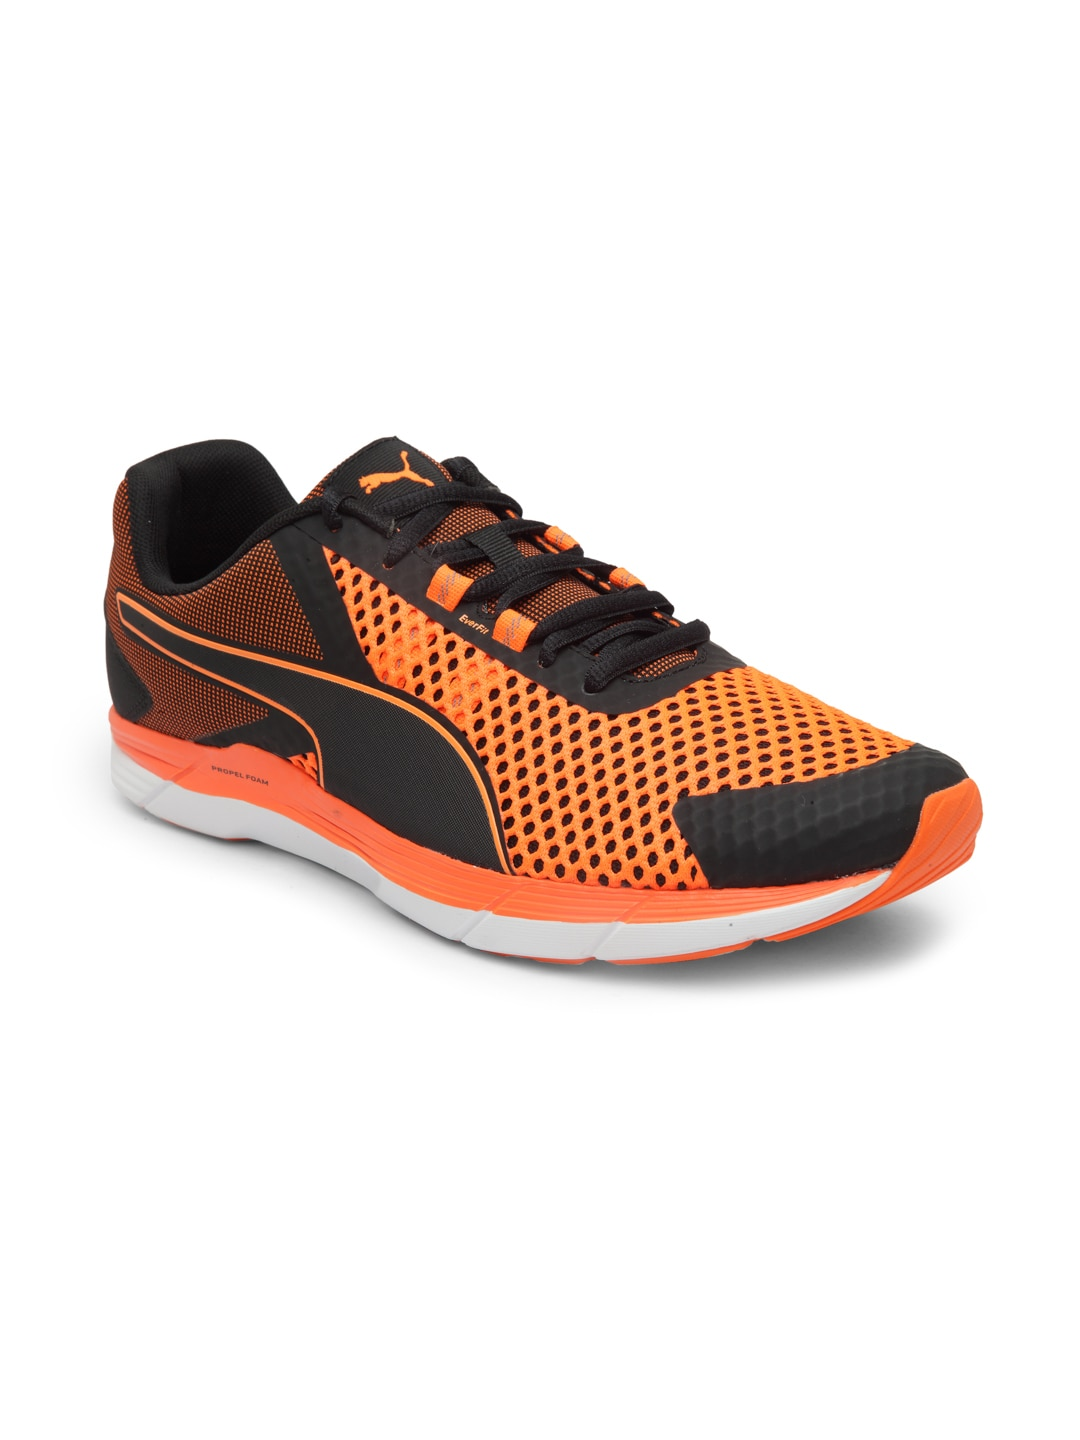 more photos a6bfc 7f3bd Shoes Puma Heels - Buy Shoes Puma Heels online in India